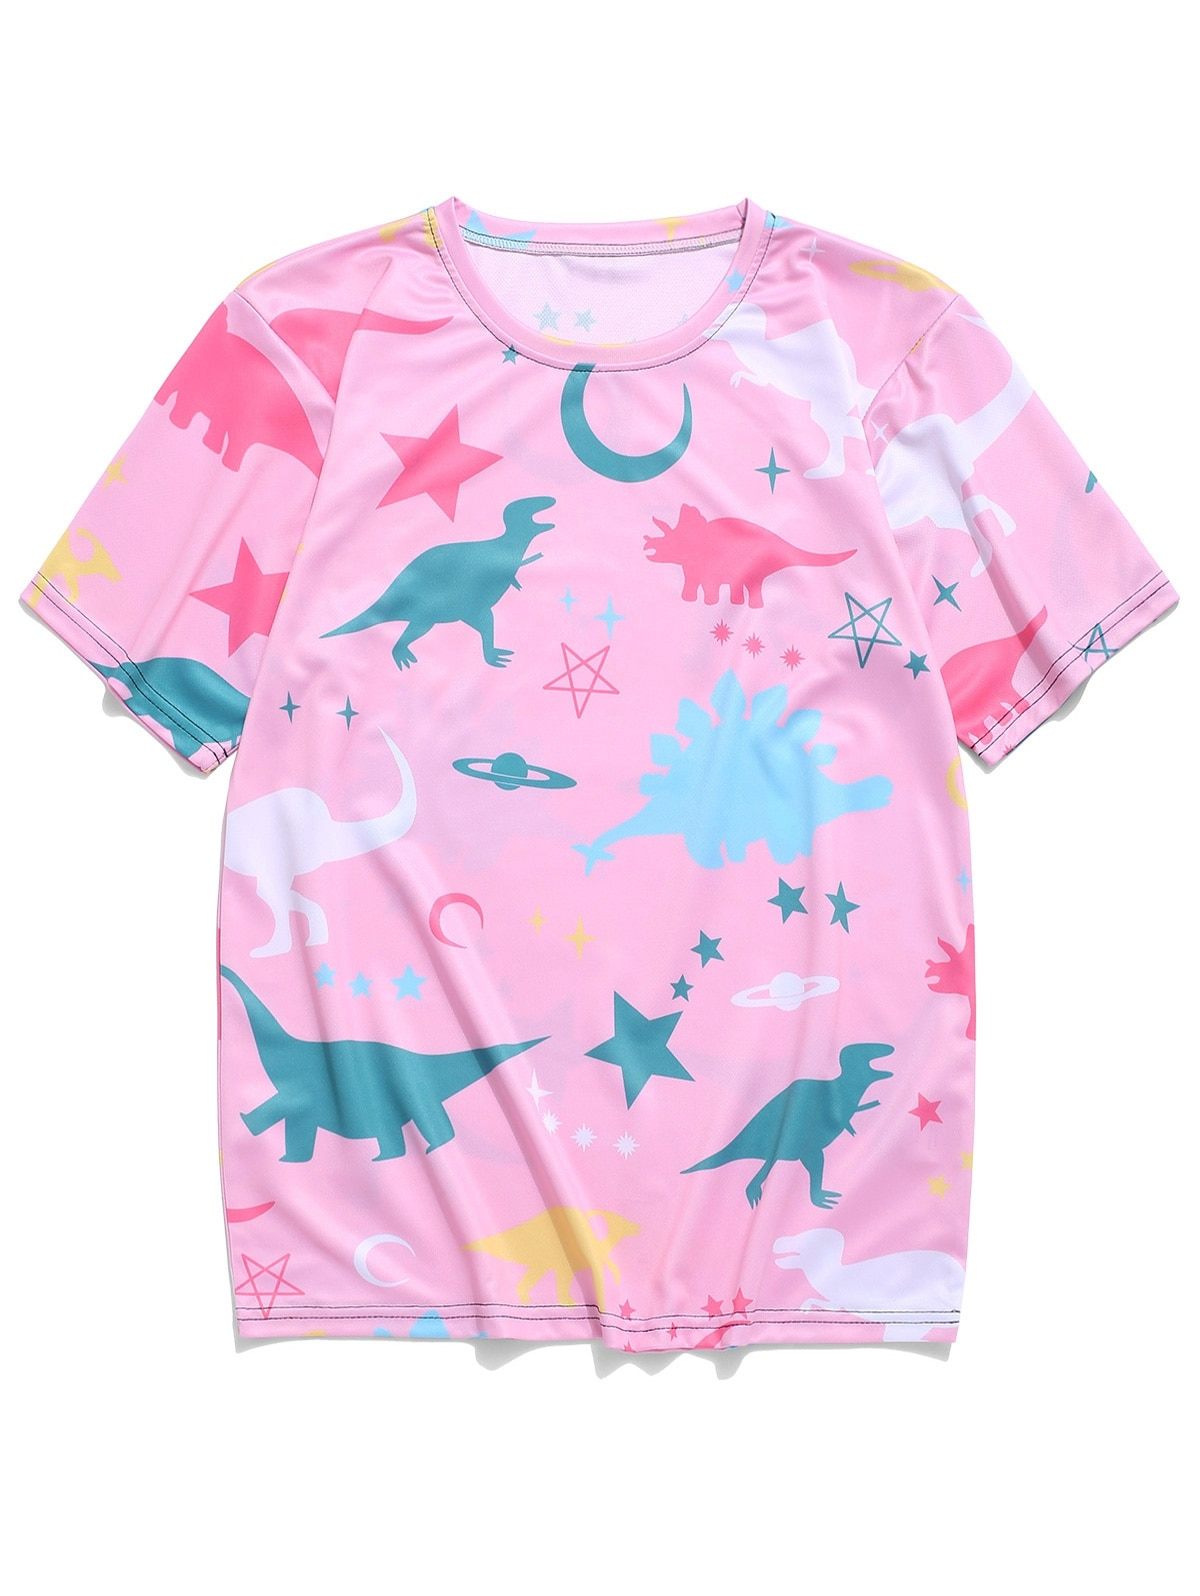 Moon Star Planet Dinosaur Print T-shirt